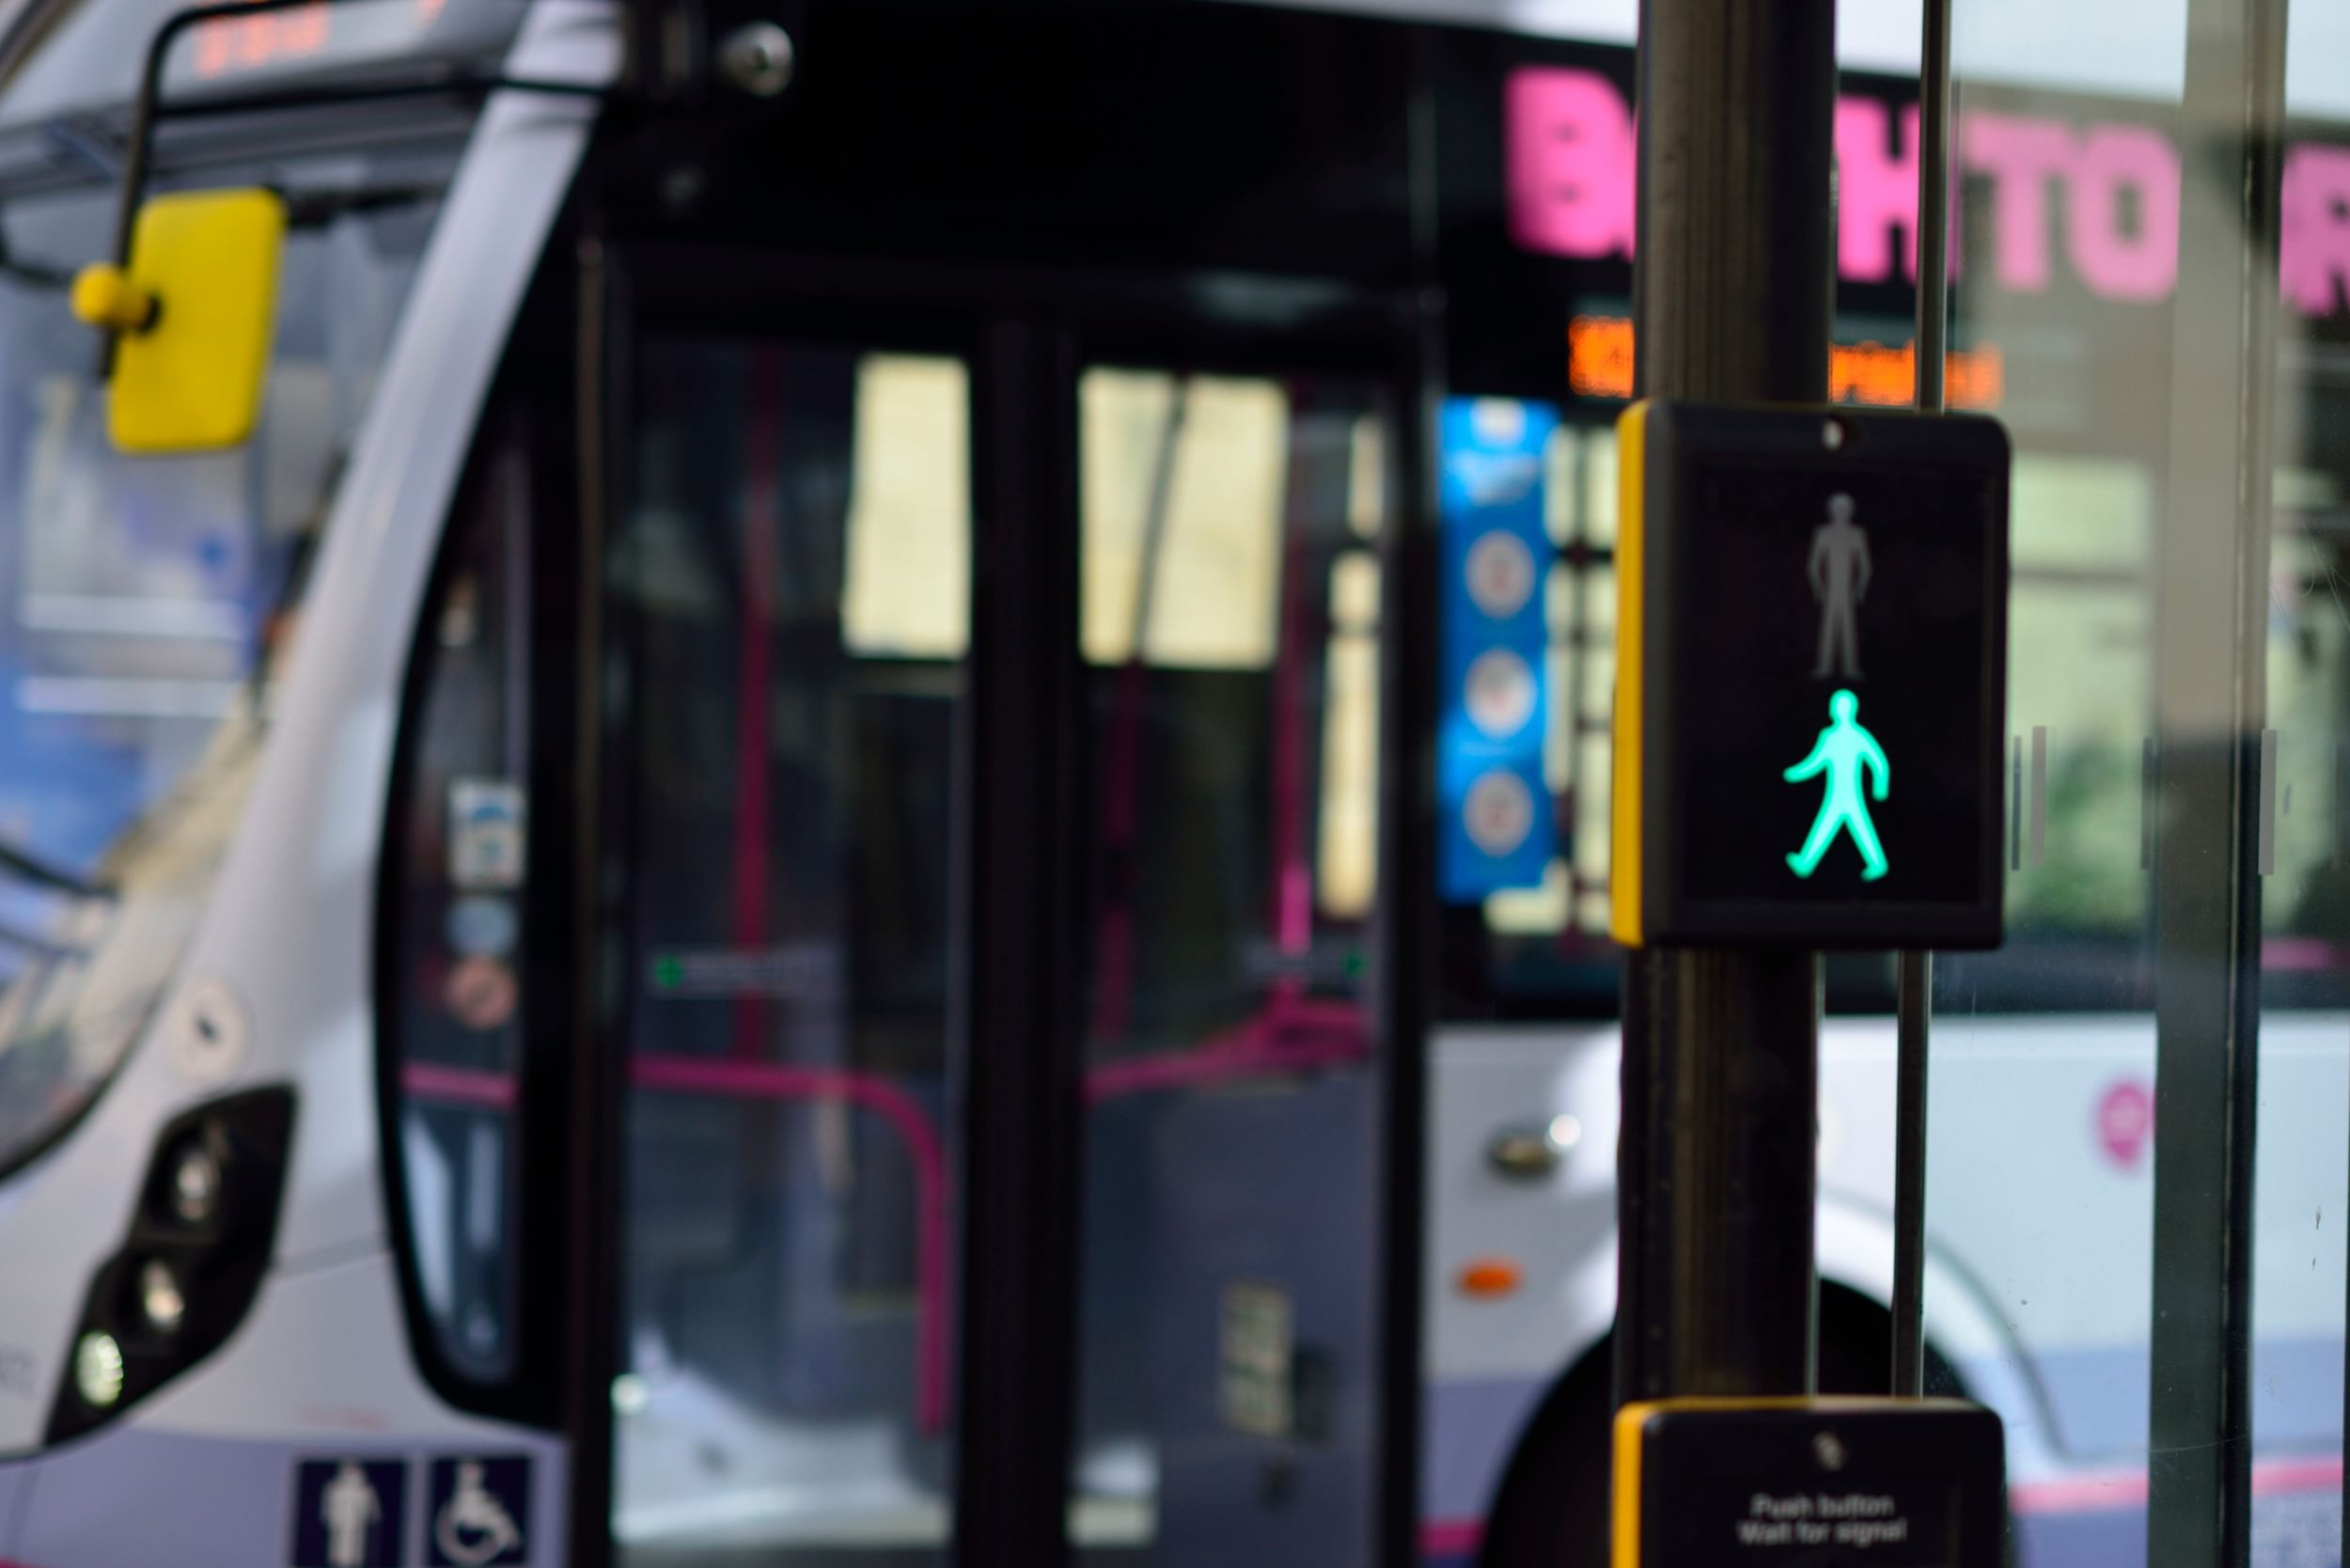 Pedestrian crossing light showing green light, with bus stopped behind it